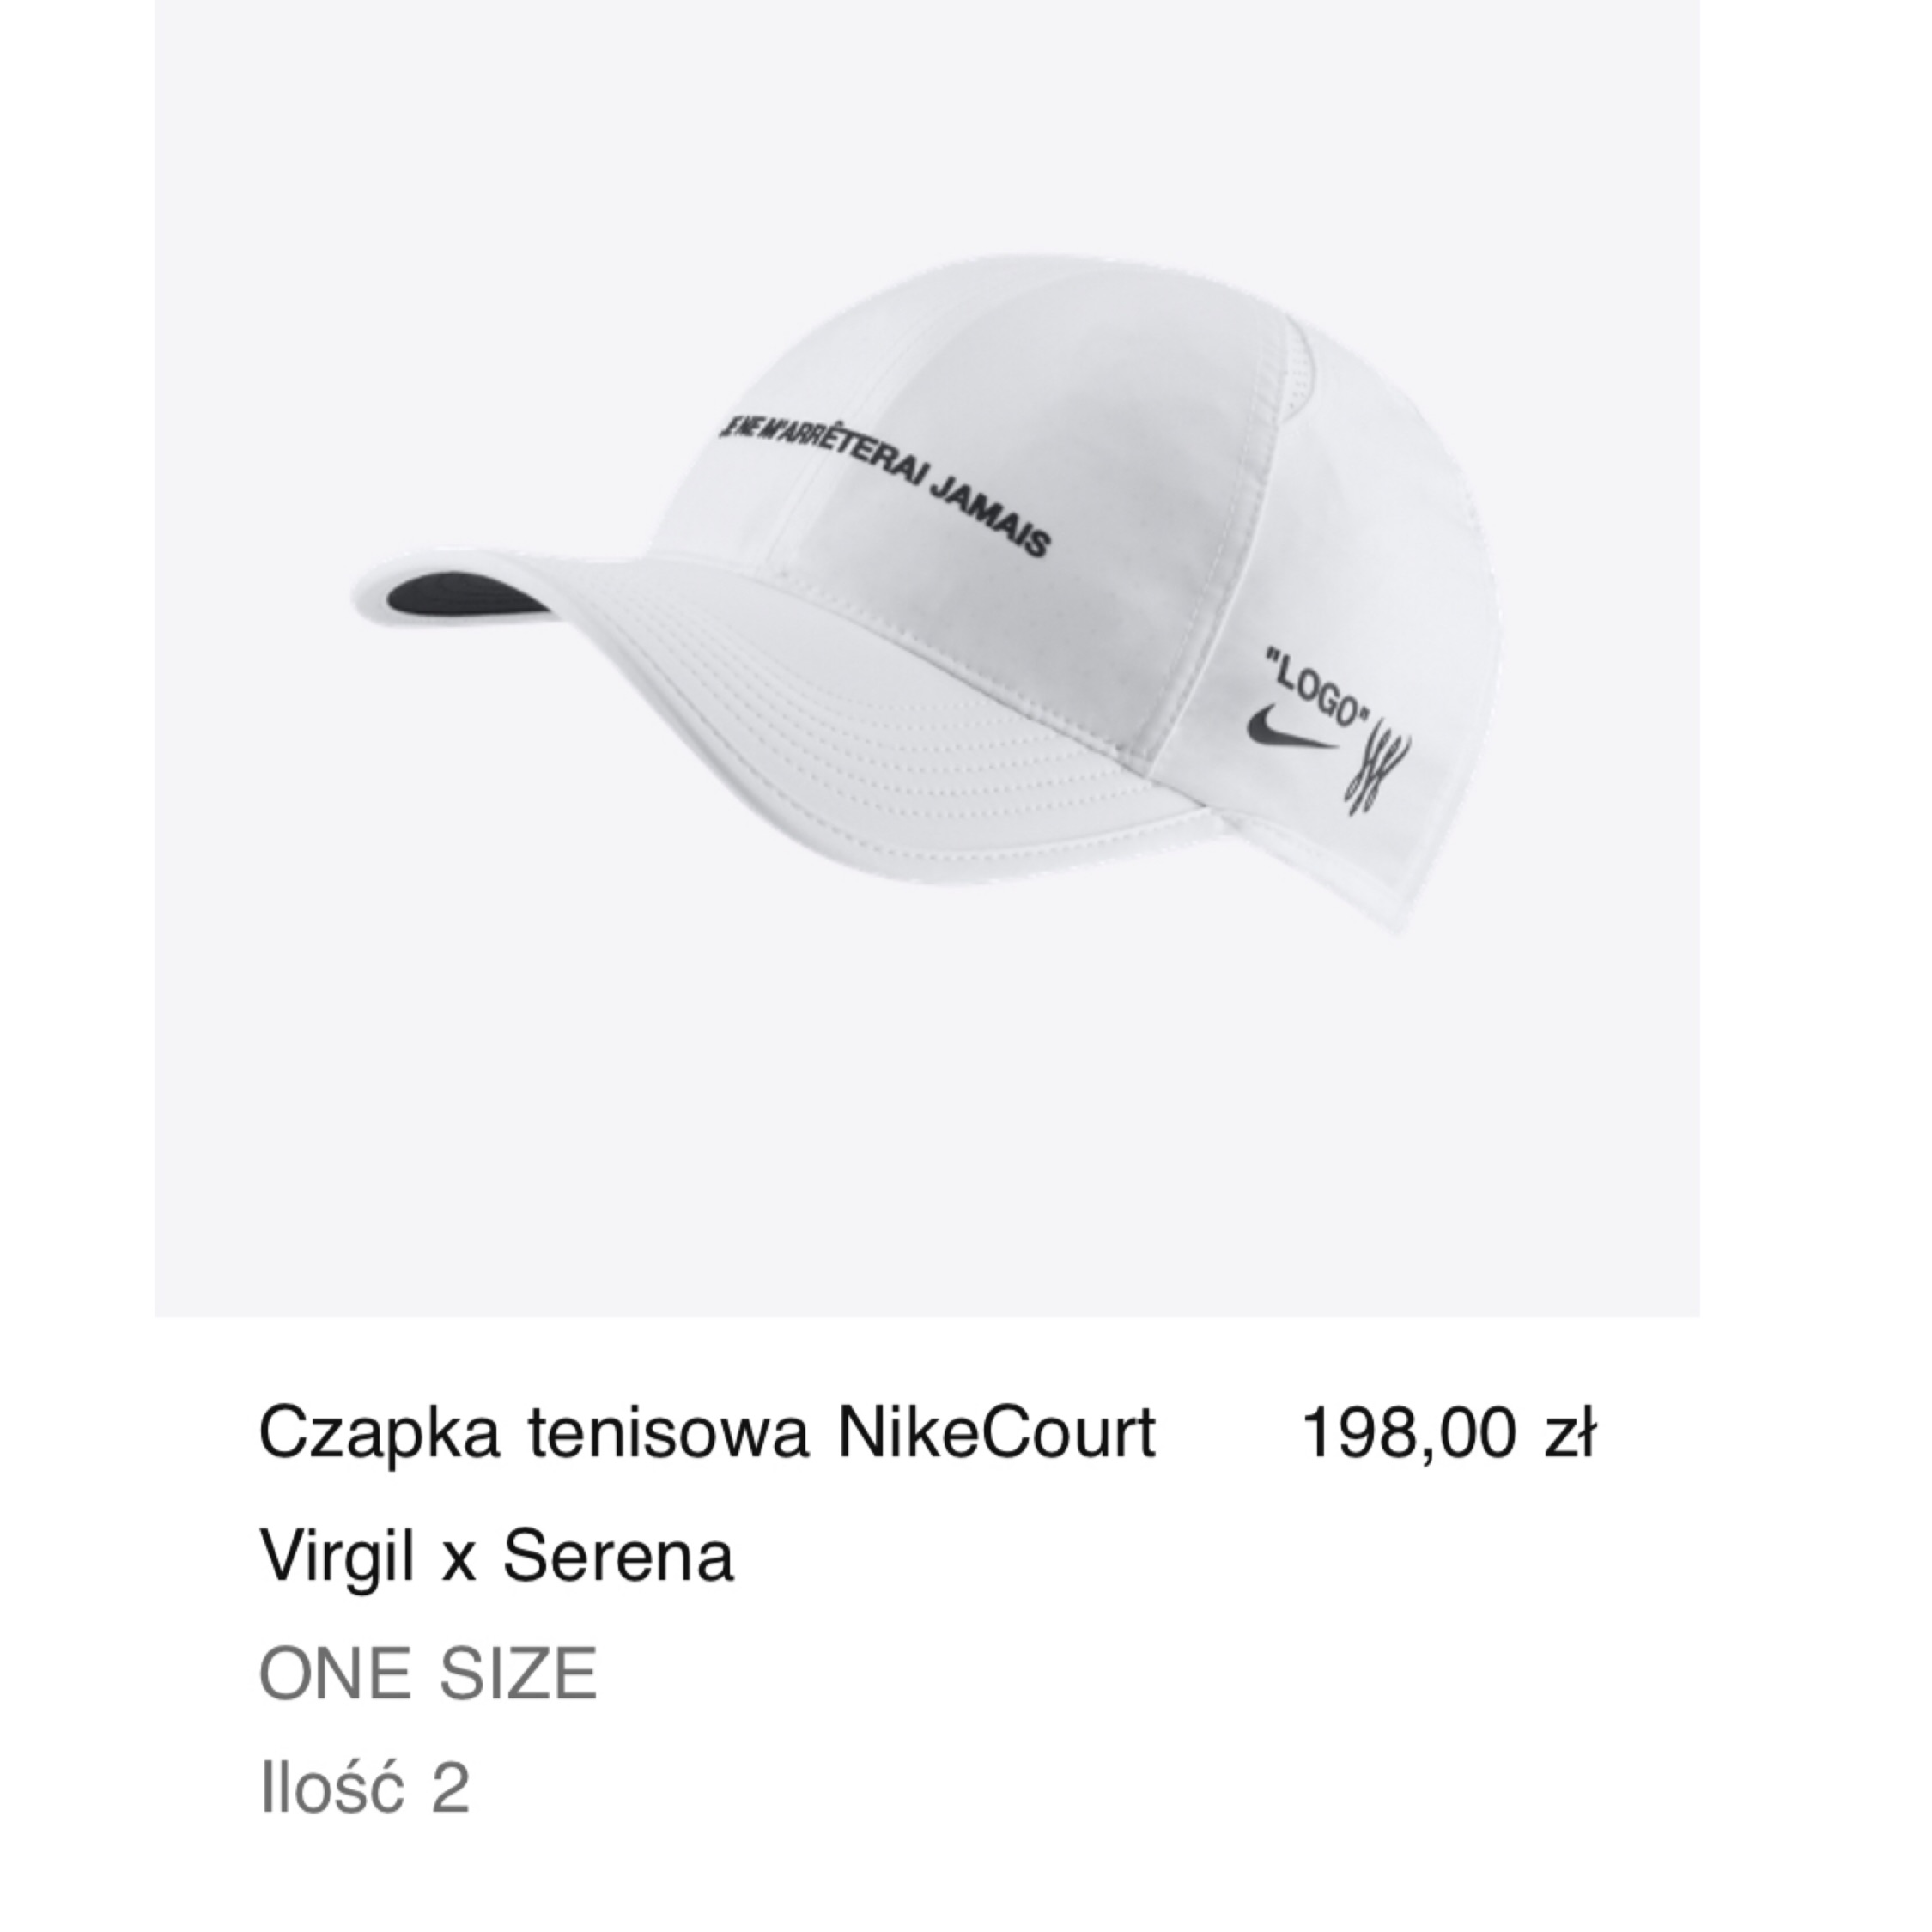 Nikecourt Virgil X Serena Cap Off-White